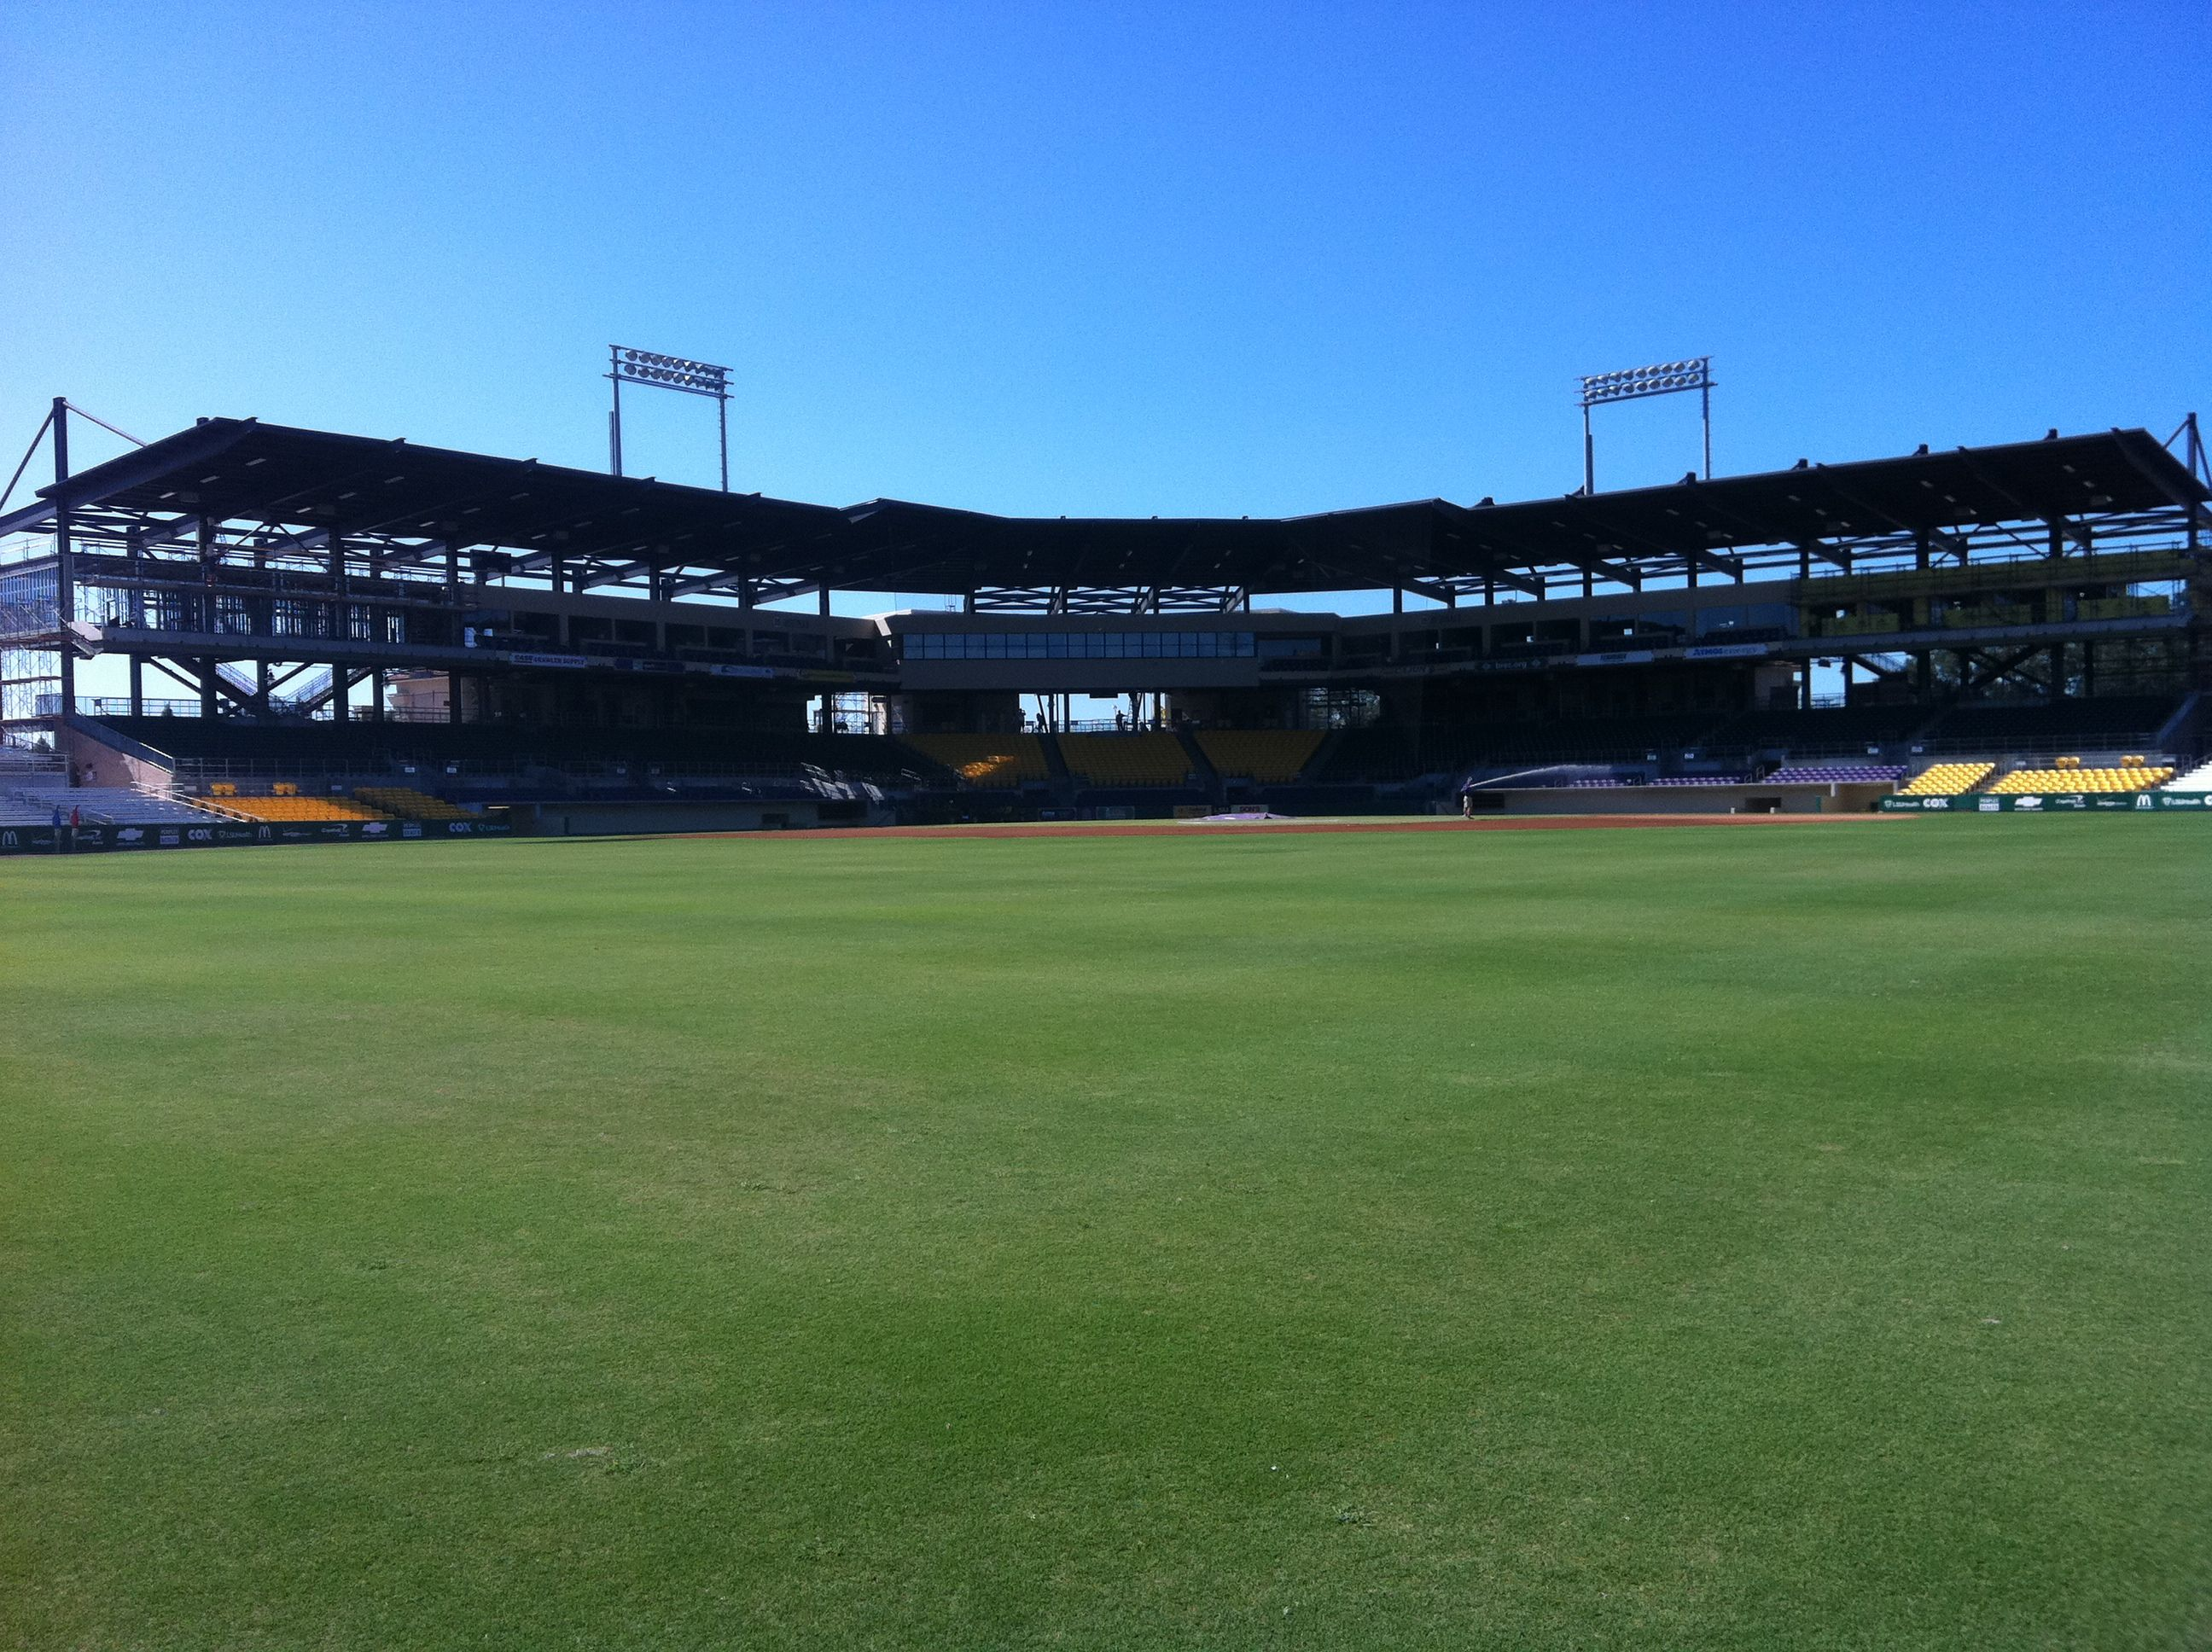 Alex Box Stadium.  Home of the LSU Tigers baseball team.